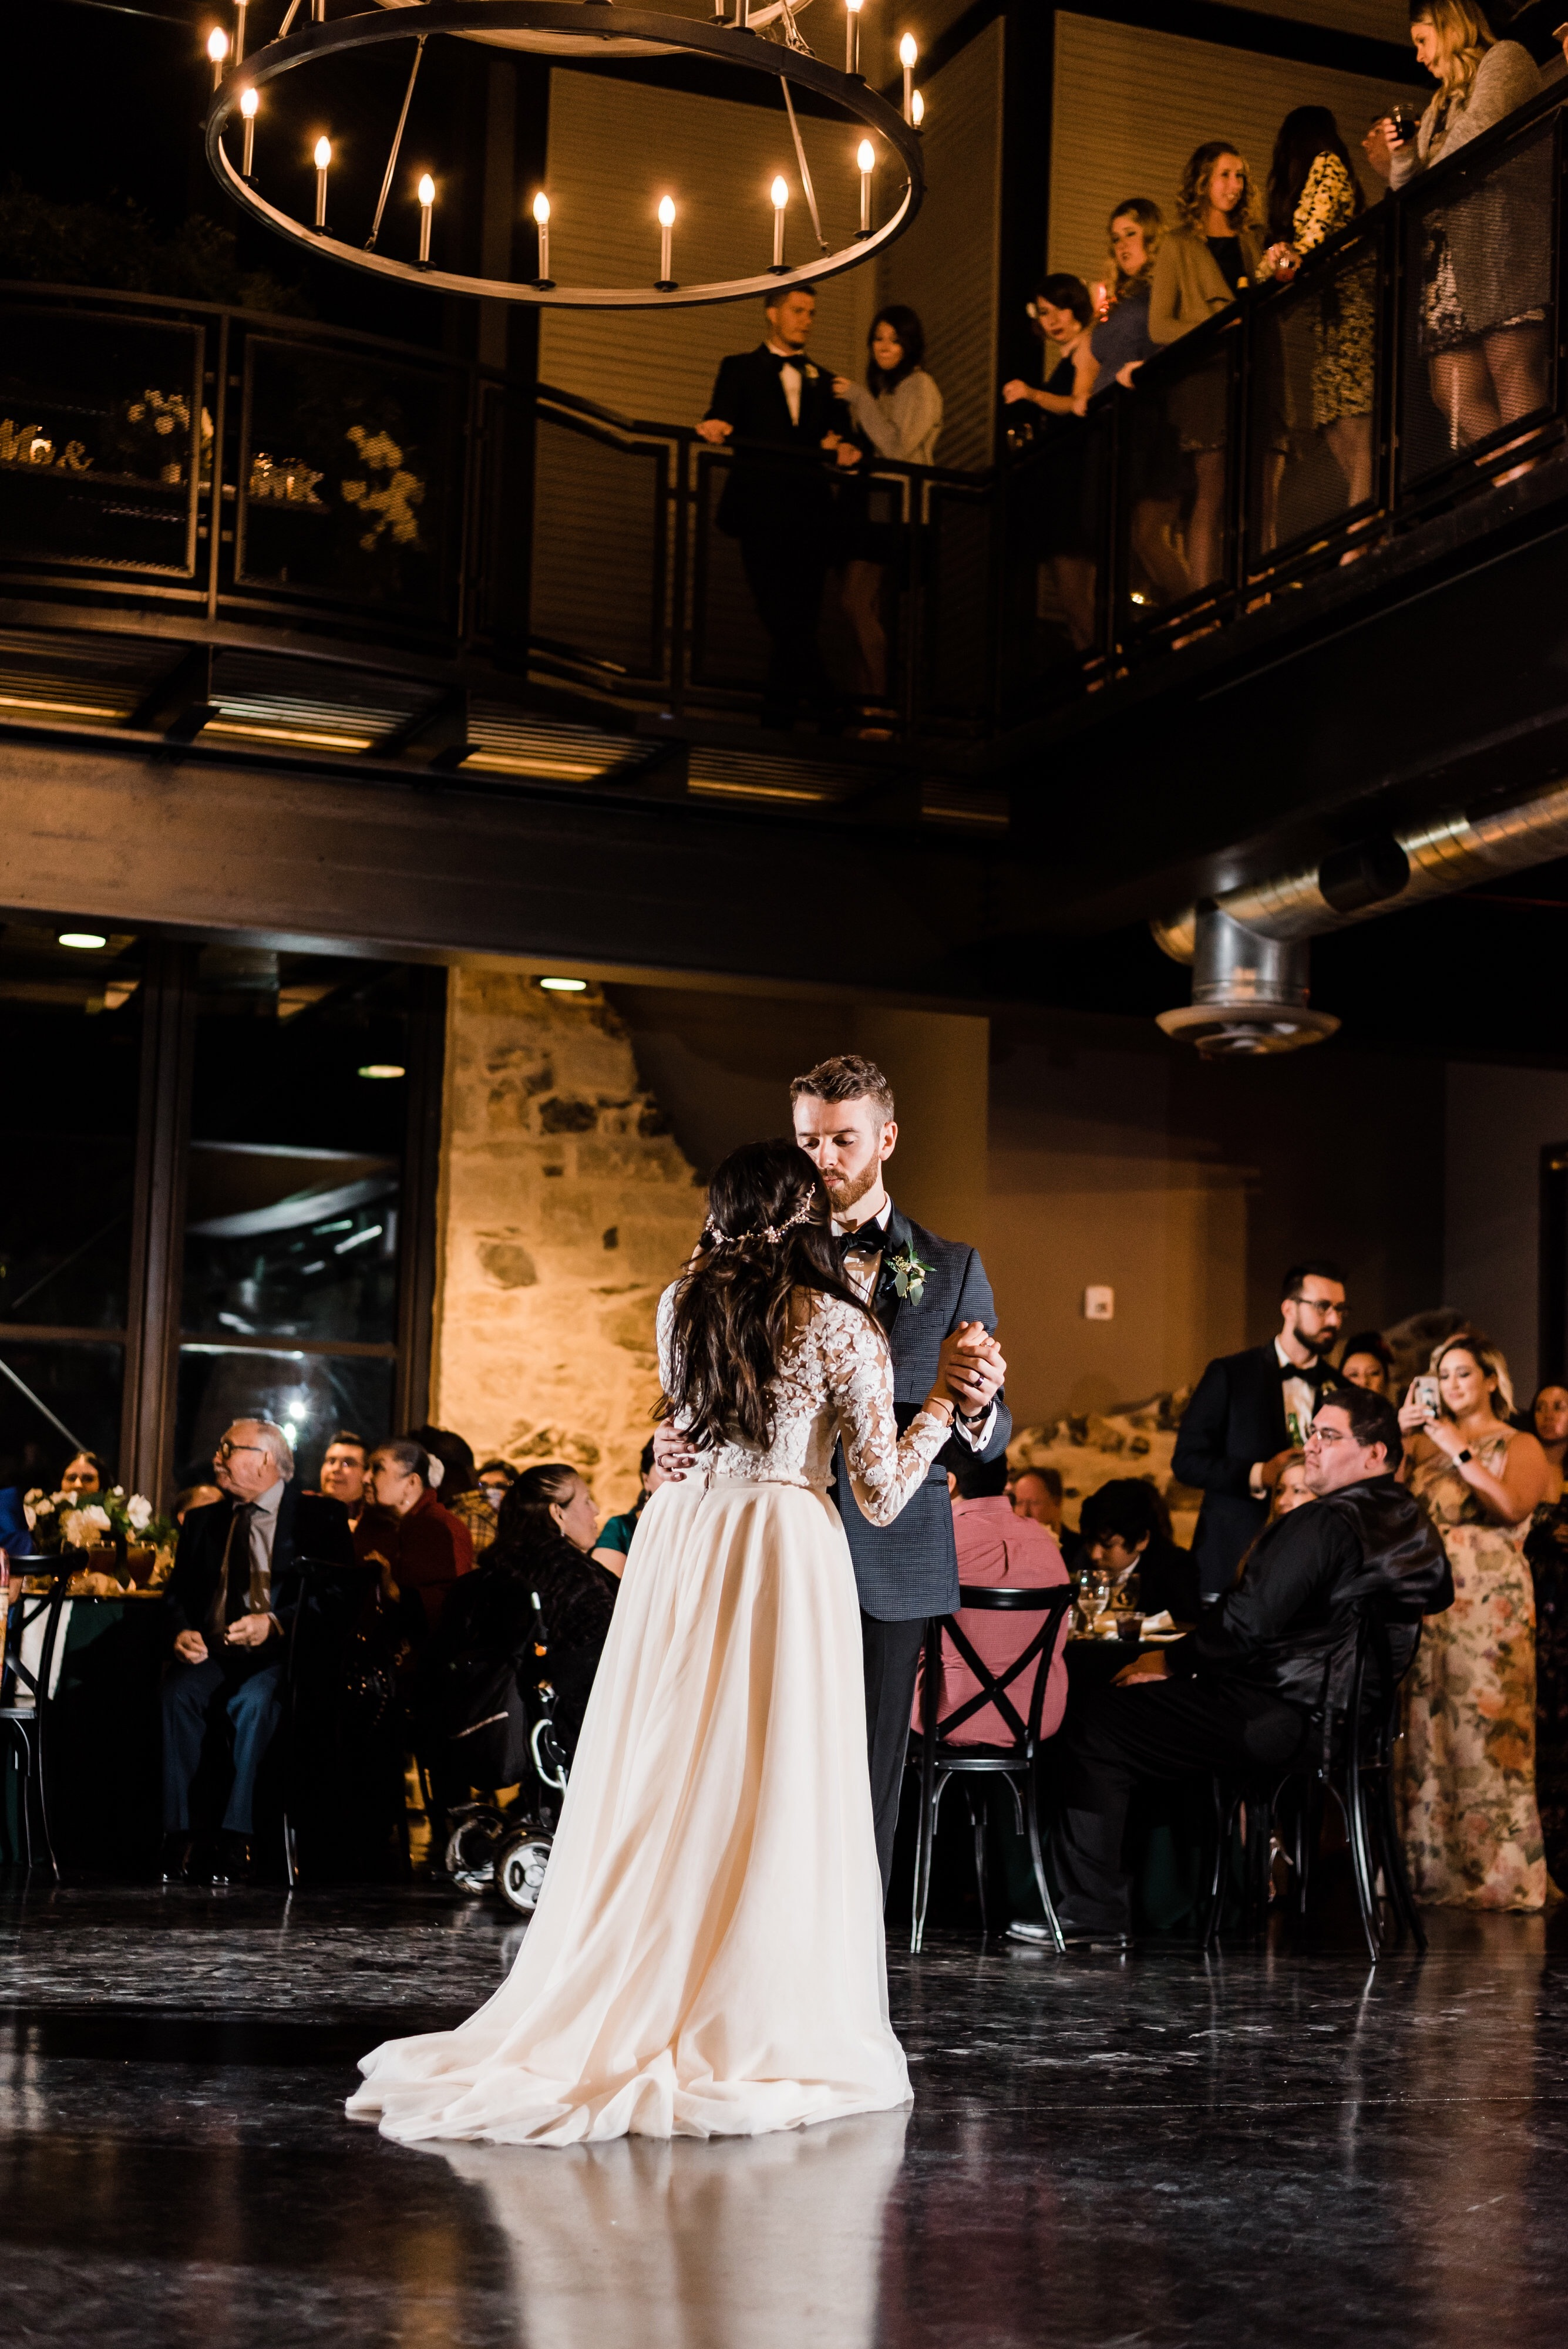 First dance. Bride is wearing a blush champagne circle dress with lace sleeves.